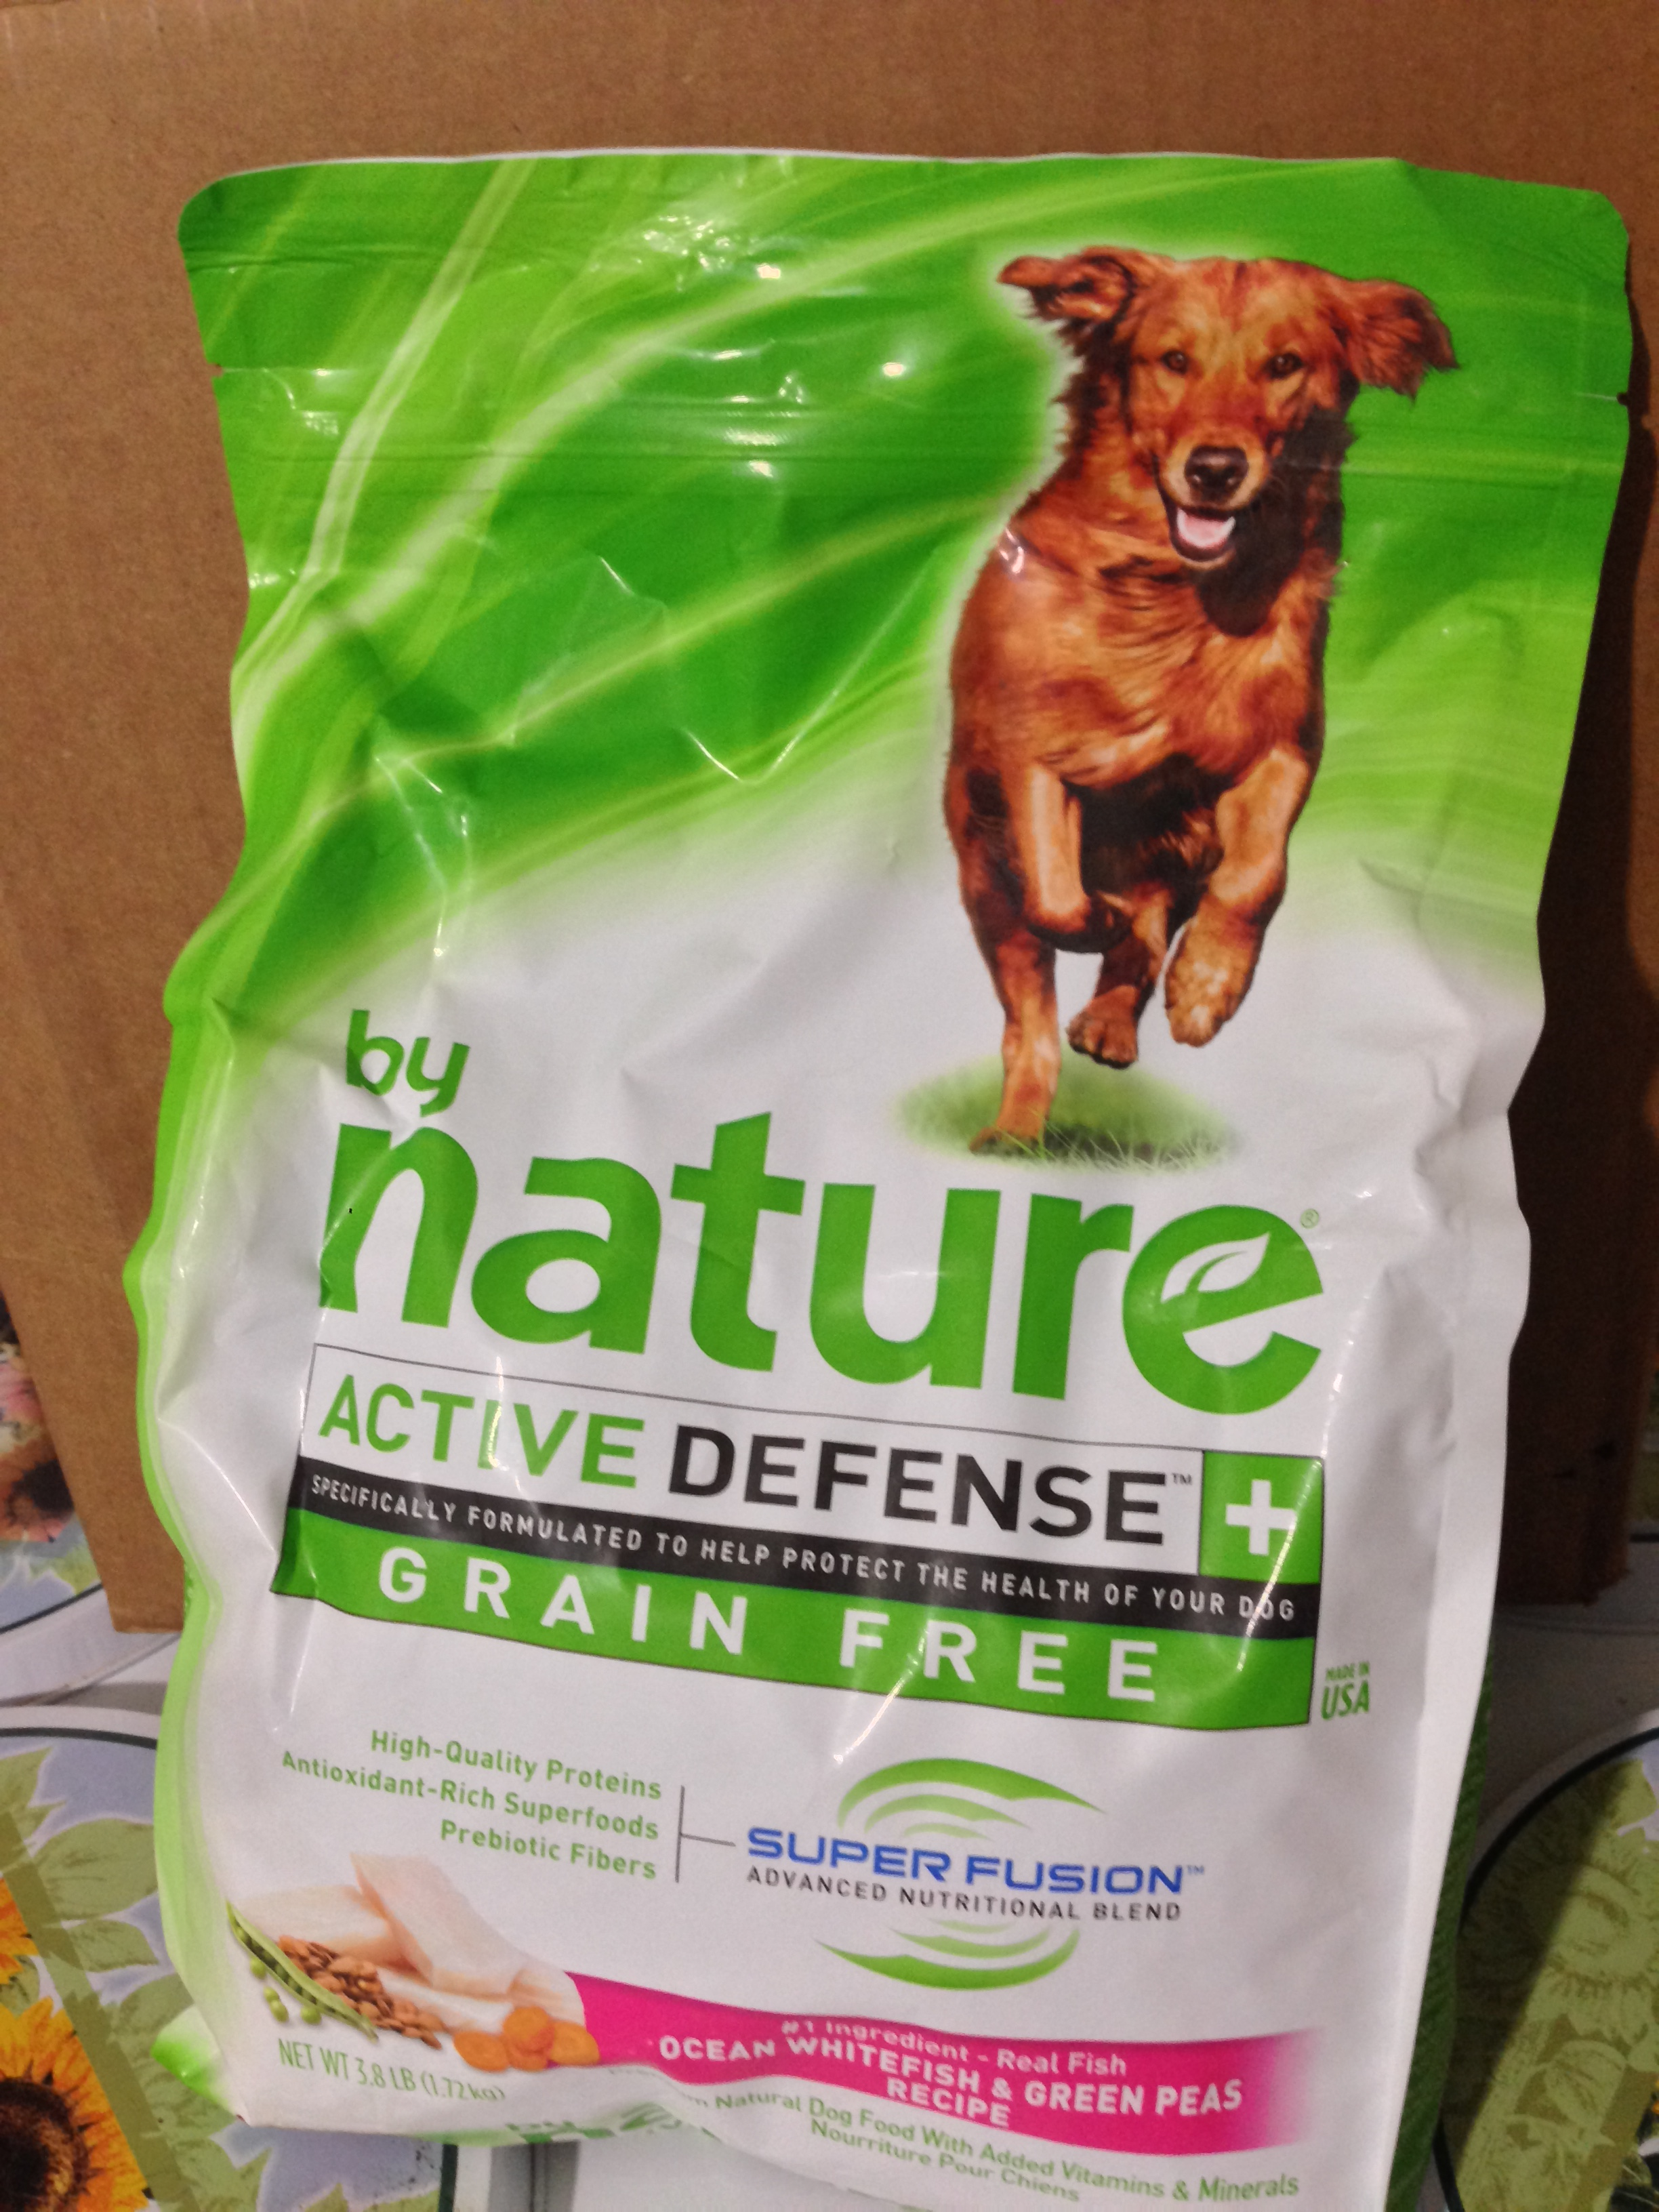 By Nature Active Defense Grain Free Dog Food Ingredients